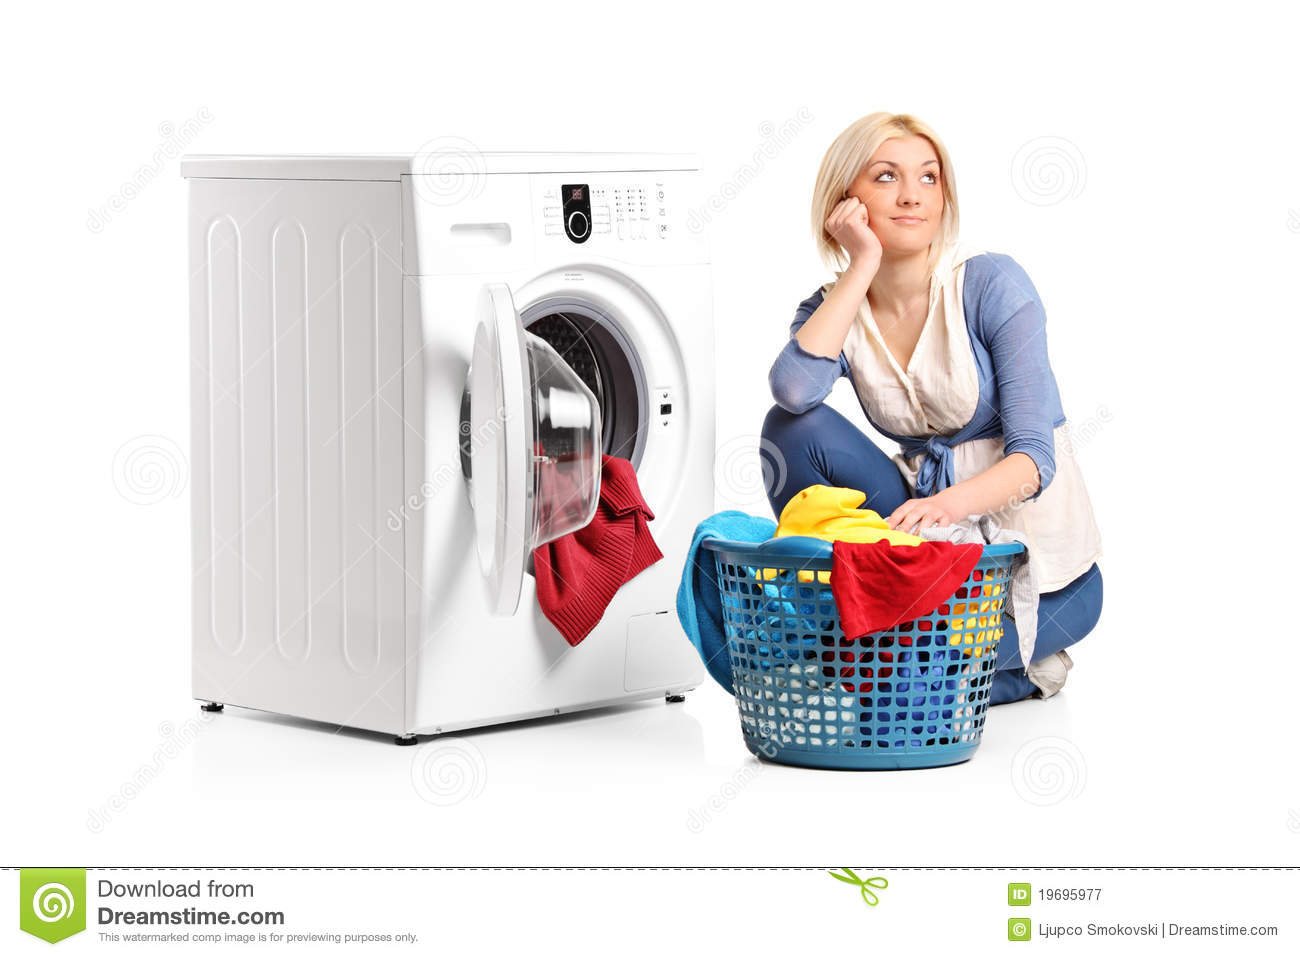 Woman in thoughts seated next to a washing machine